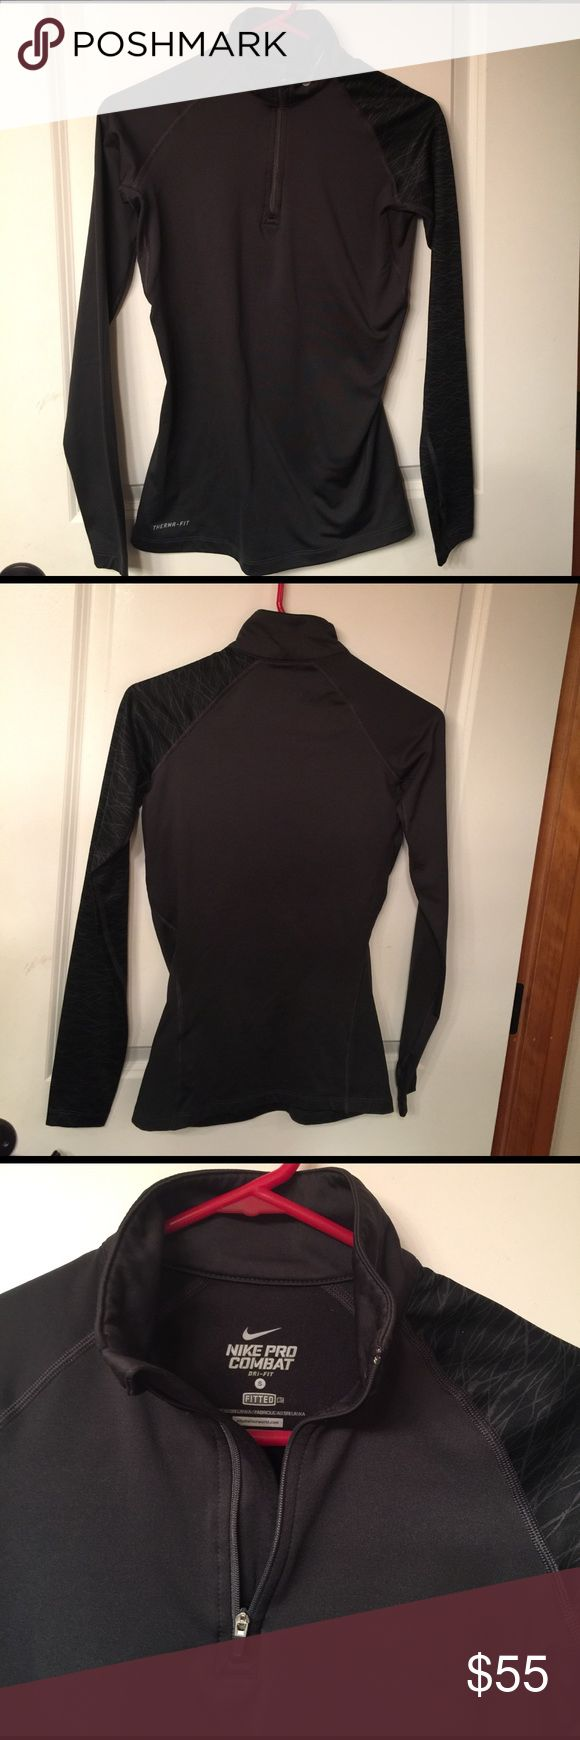 Women's Nike pro combat dri-fit jacket size small Women's Nike pro combat dri-fit jacket size small charcoal grey. One sleeve printed EUC. Fitted with thumb holes. Nike Jackets & Coats